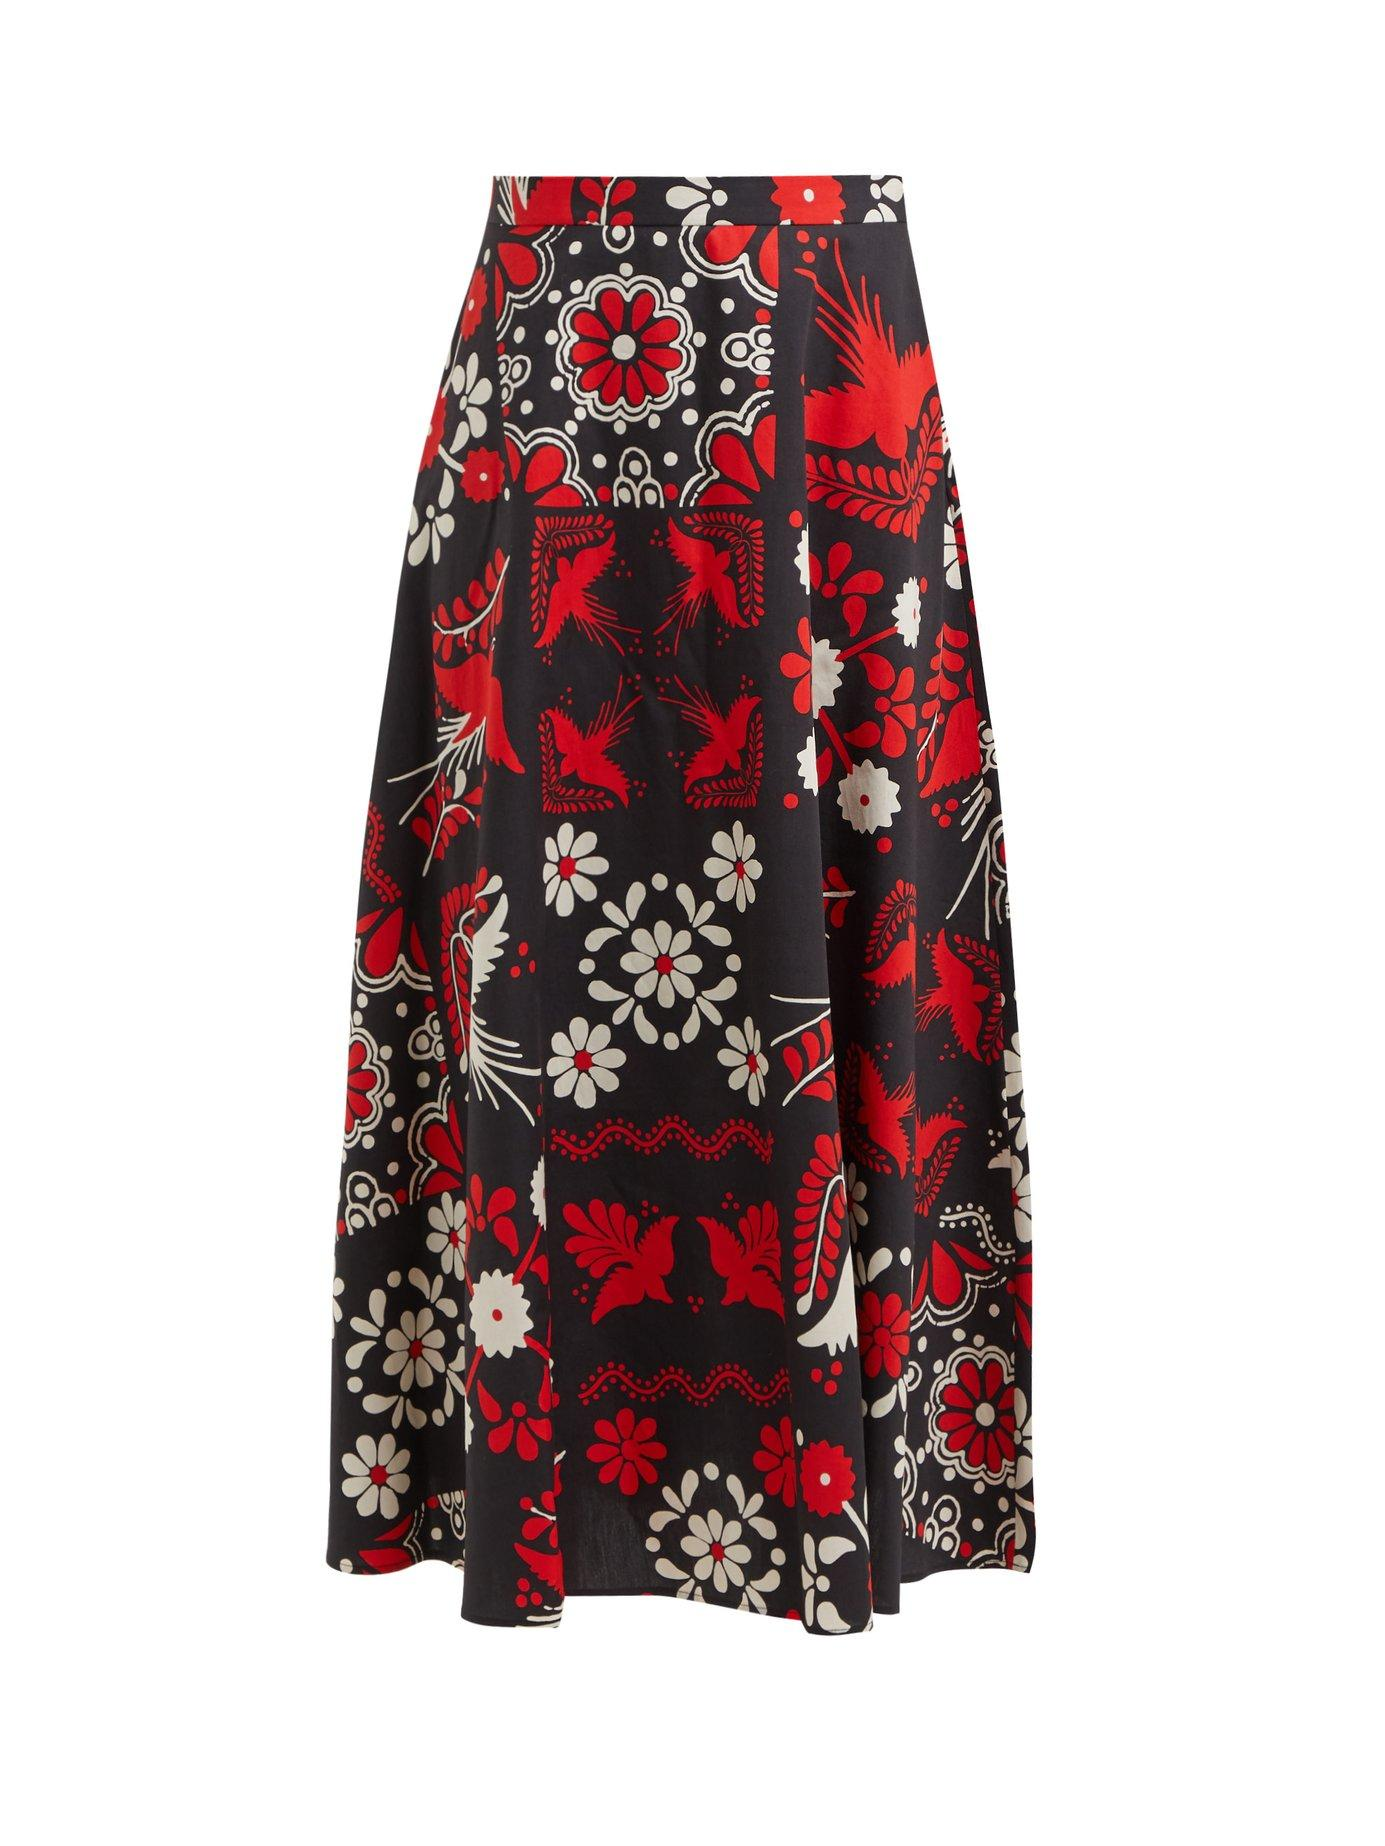 ace8f2b31 Lyst - RED Valentino Floral And Bird Print Cotton Maxi Skirt in Red ...